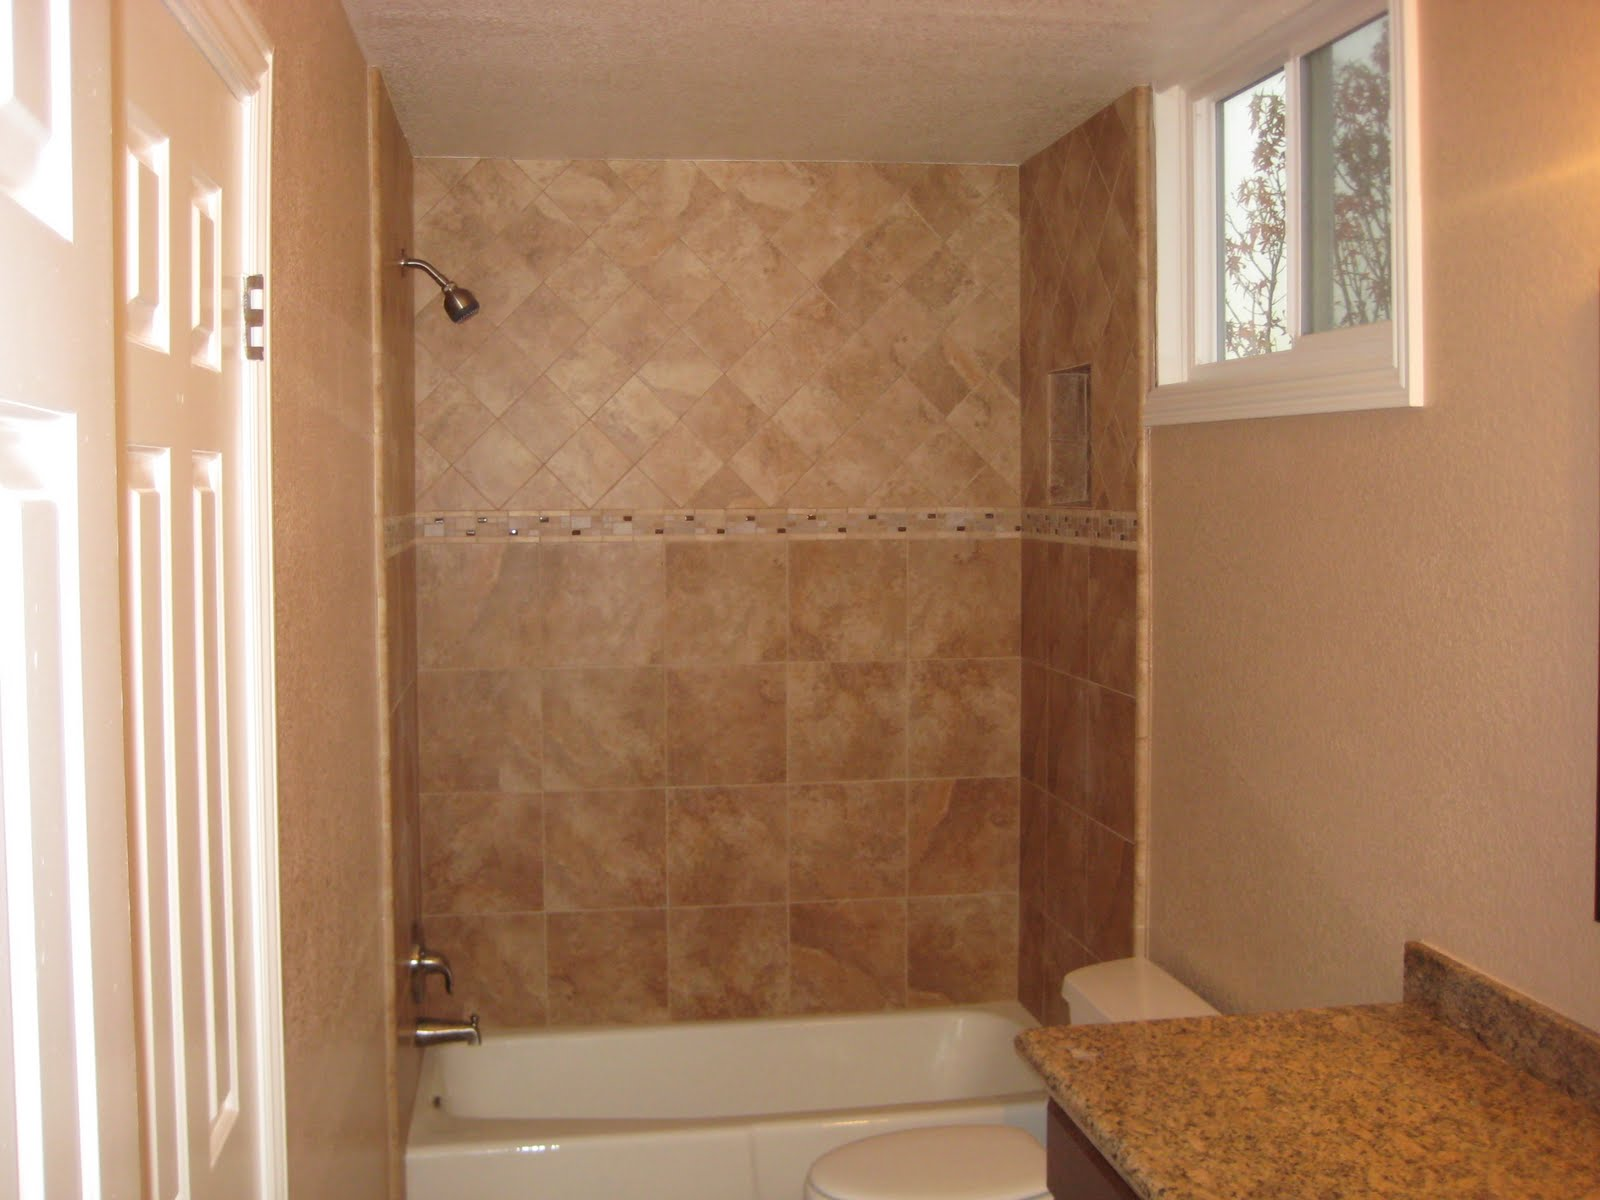 Diagonal tiles above border hmmm bathroom tile ideas for Bathroom walls designs